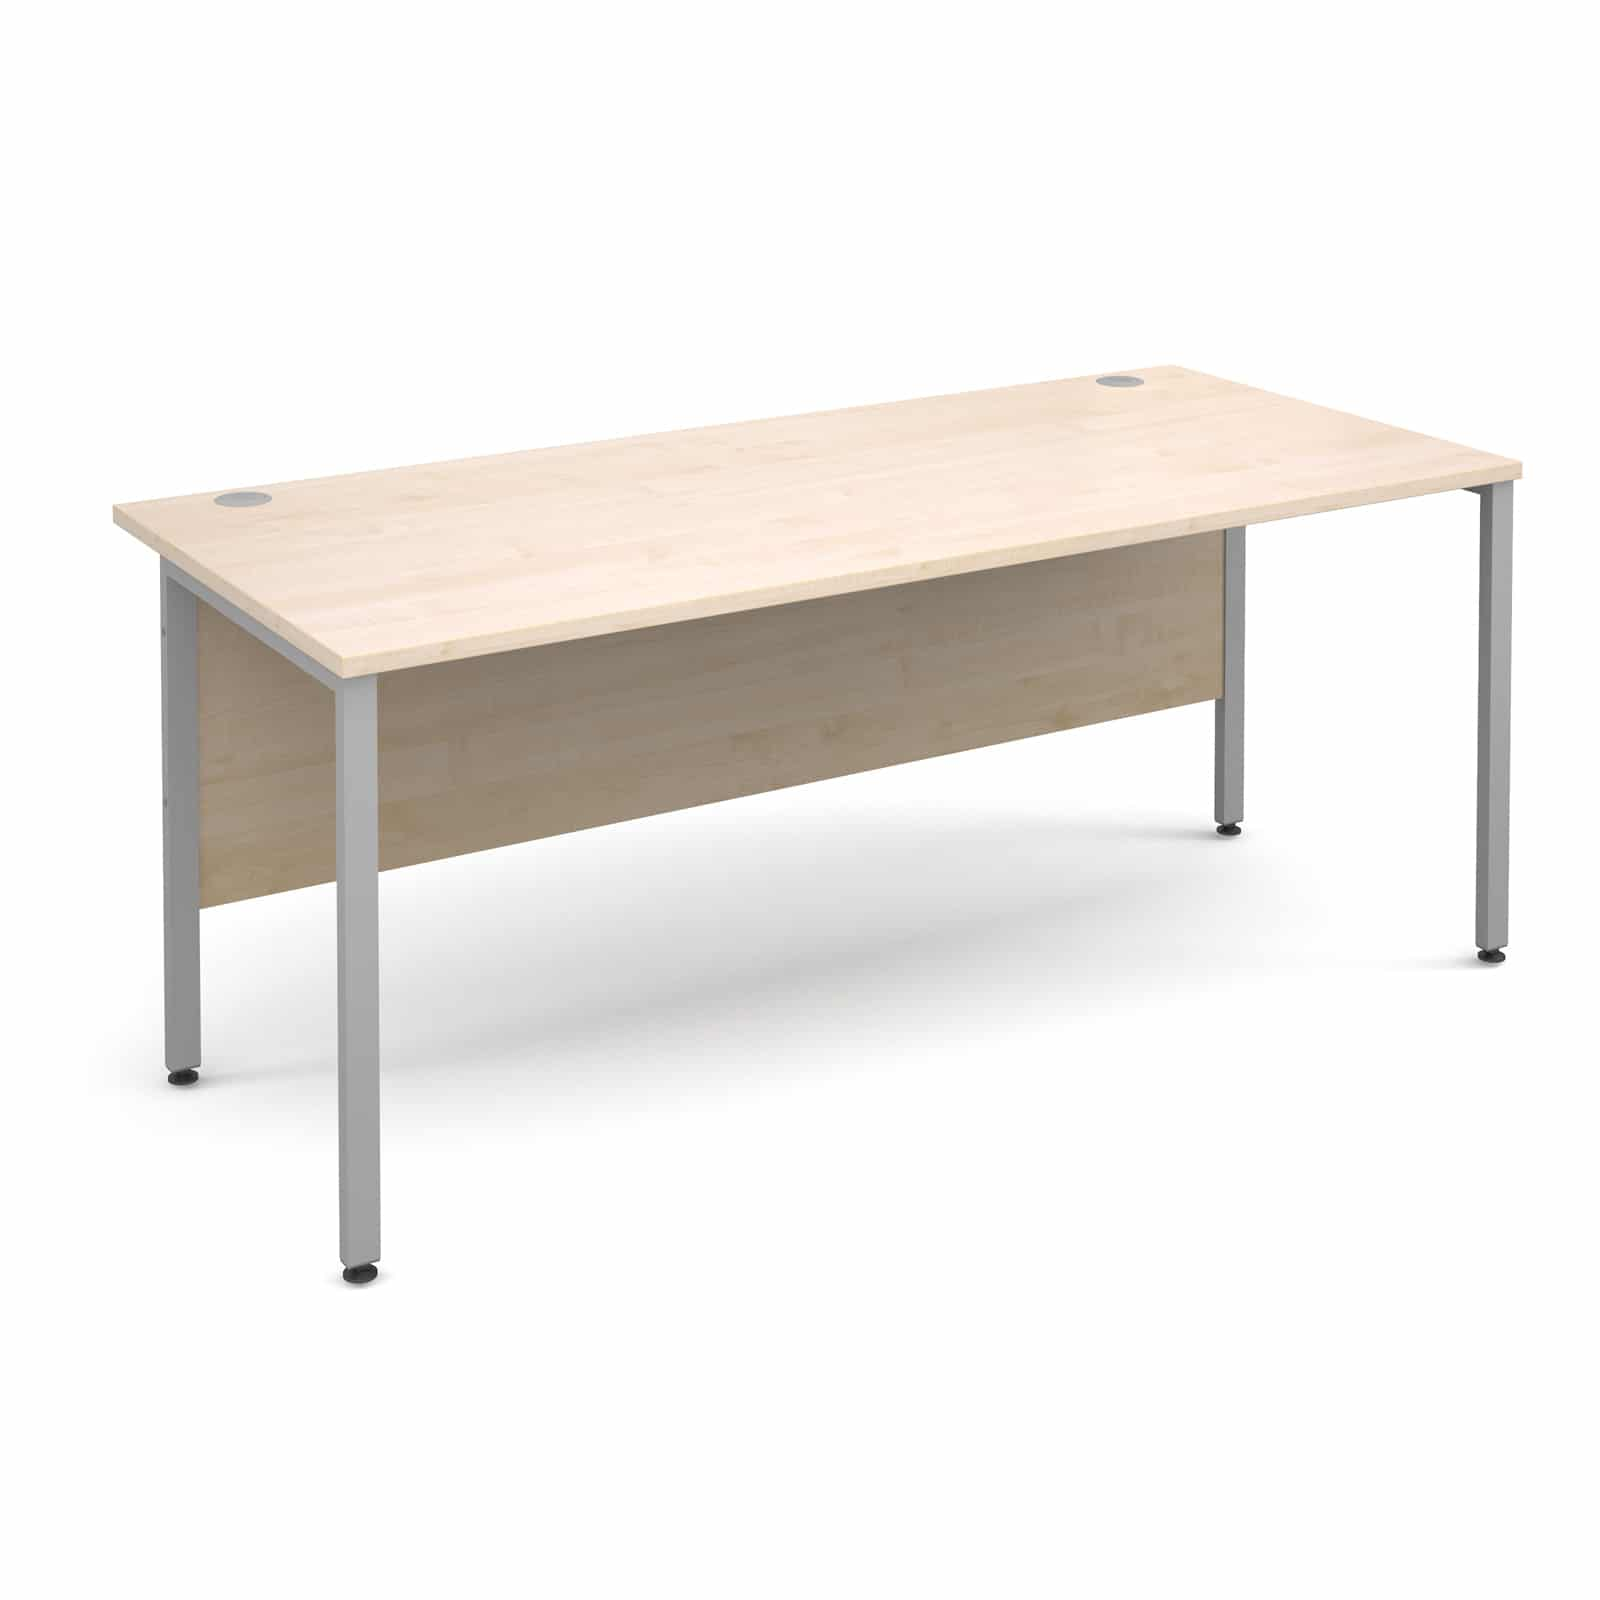 H Frame 1800 X 800mm Straight Maple Office Desk